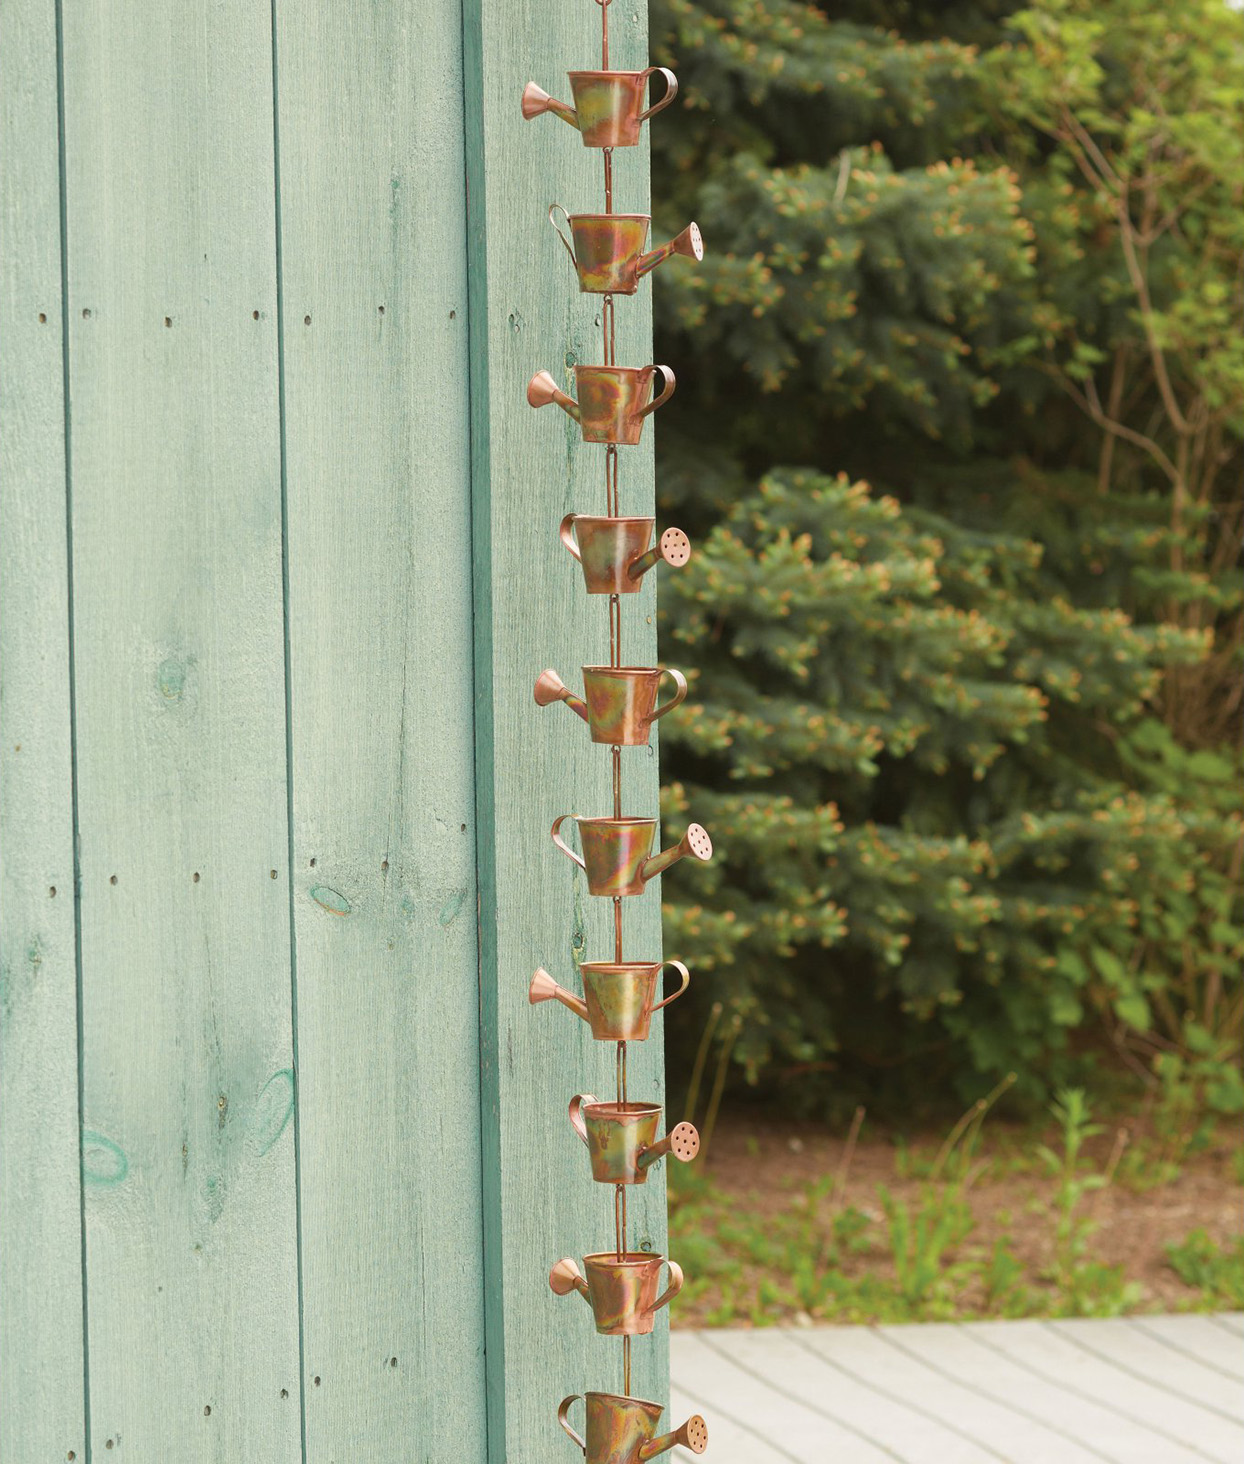 Copper rain chain with small copper watering cans in front of structure with pale teal siding